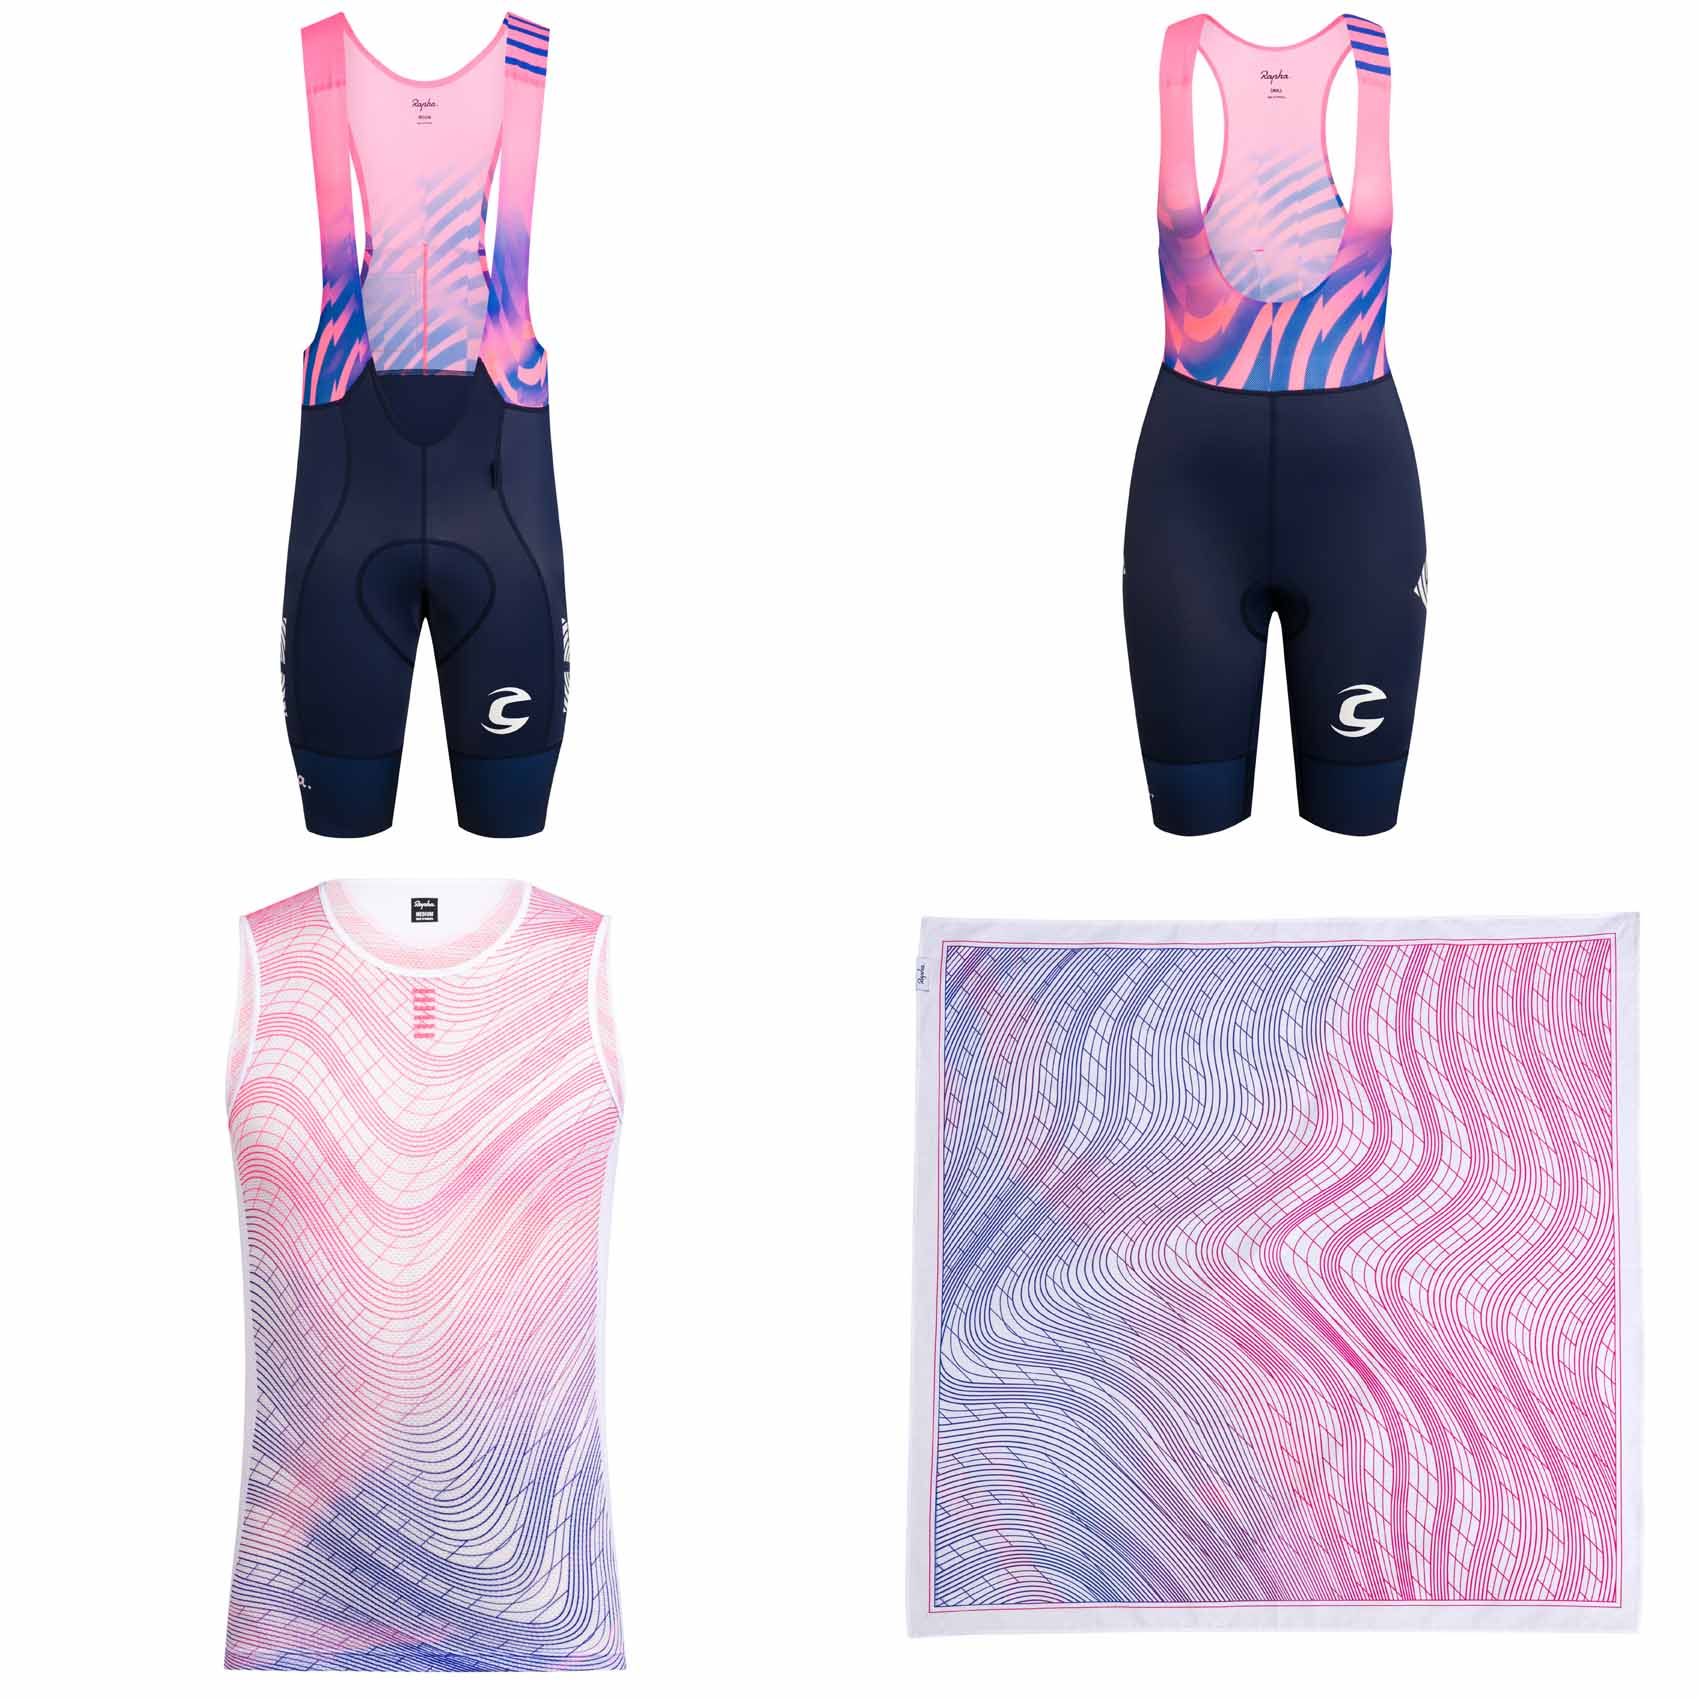 Rapha & EF Pro Cycling add even more eye catching pink & blue kits for 2020